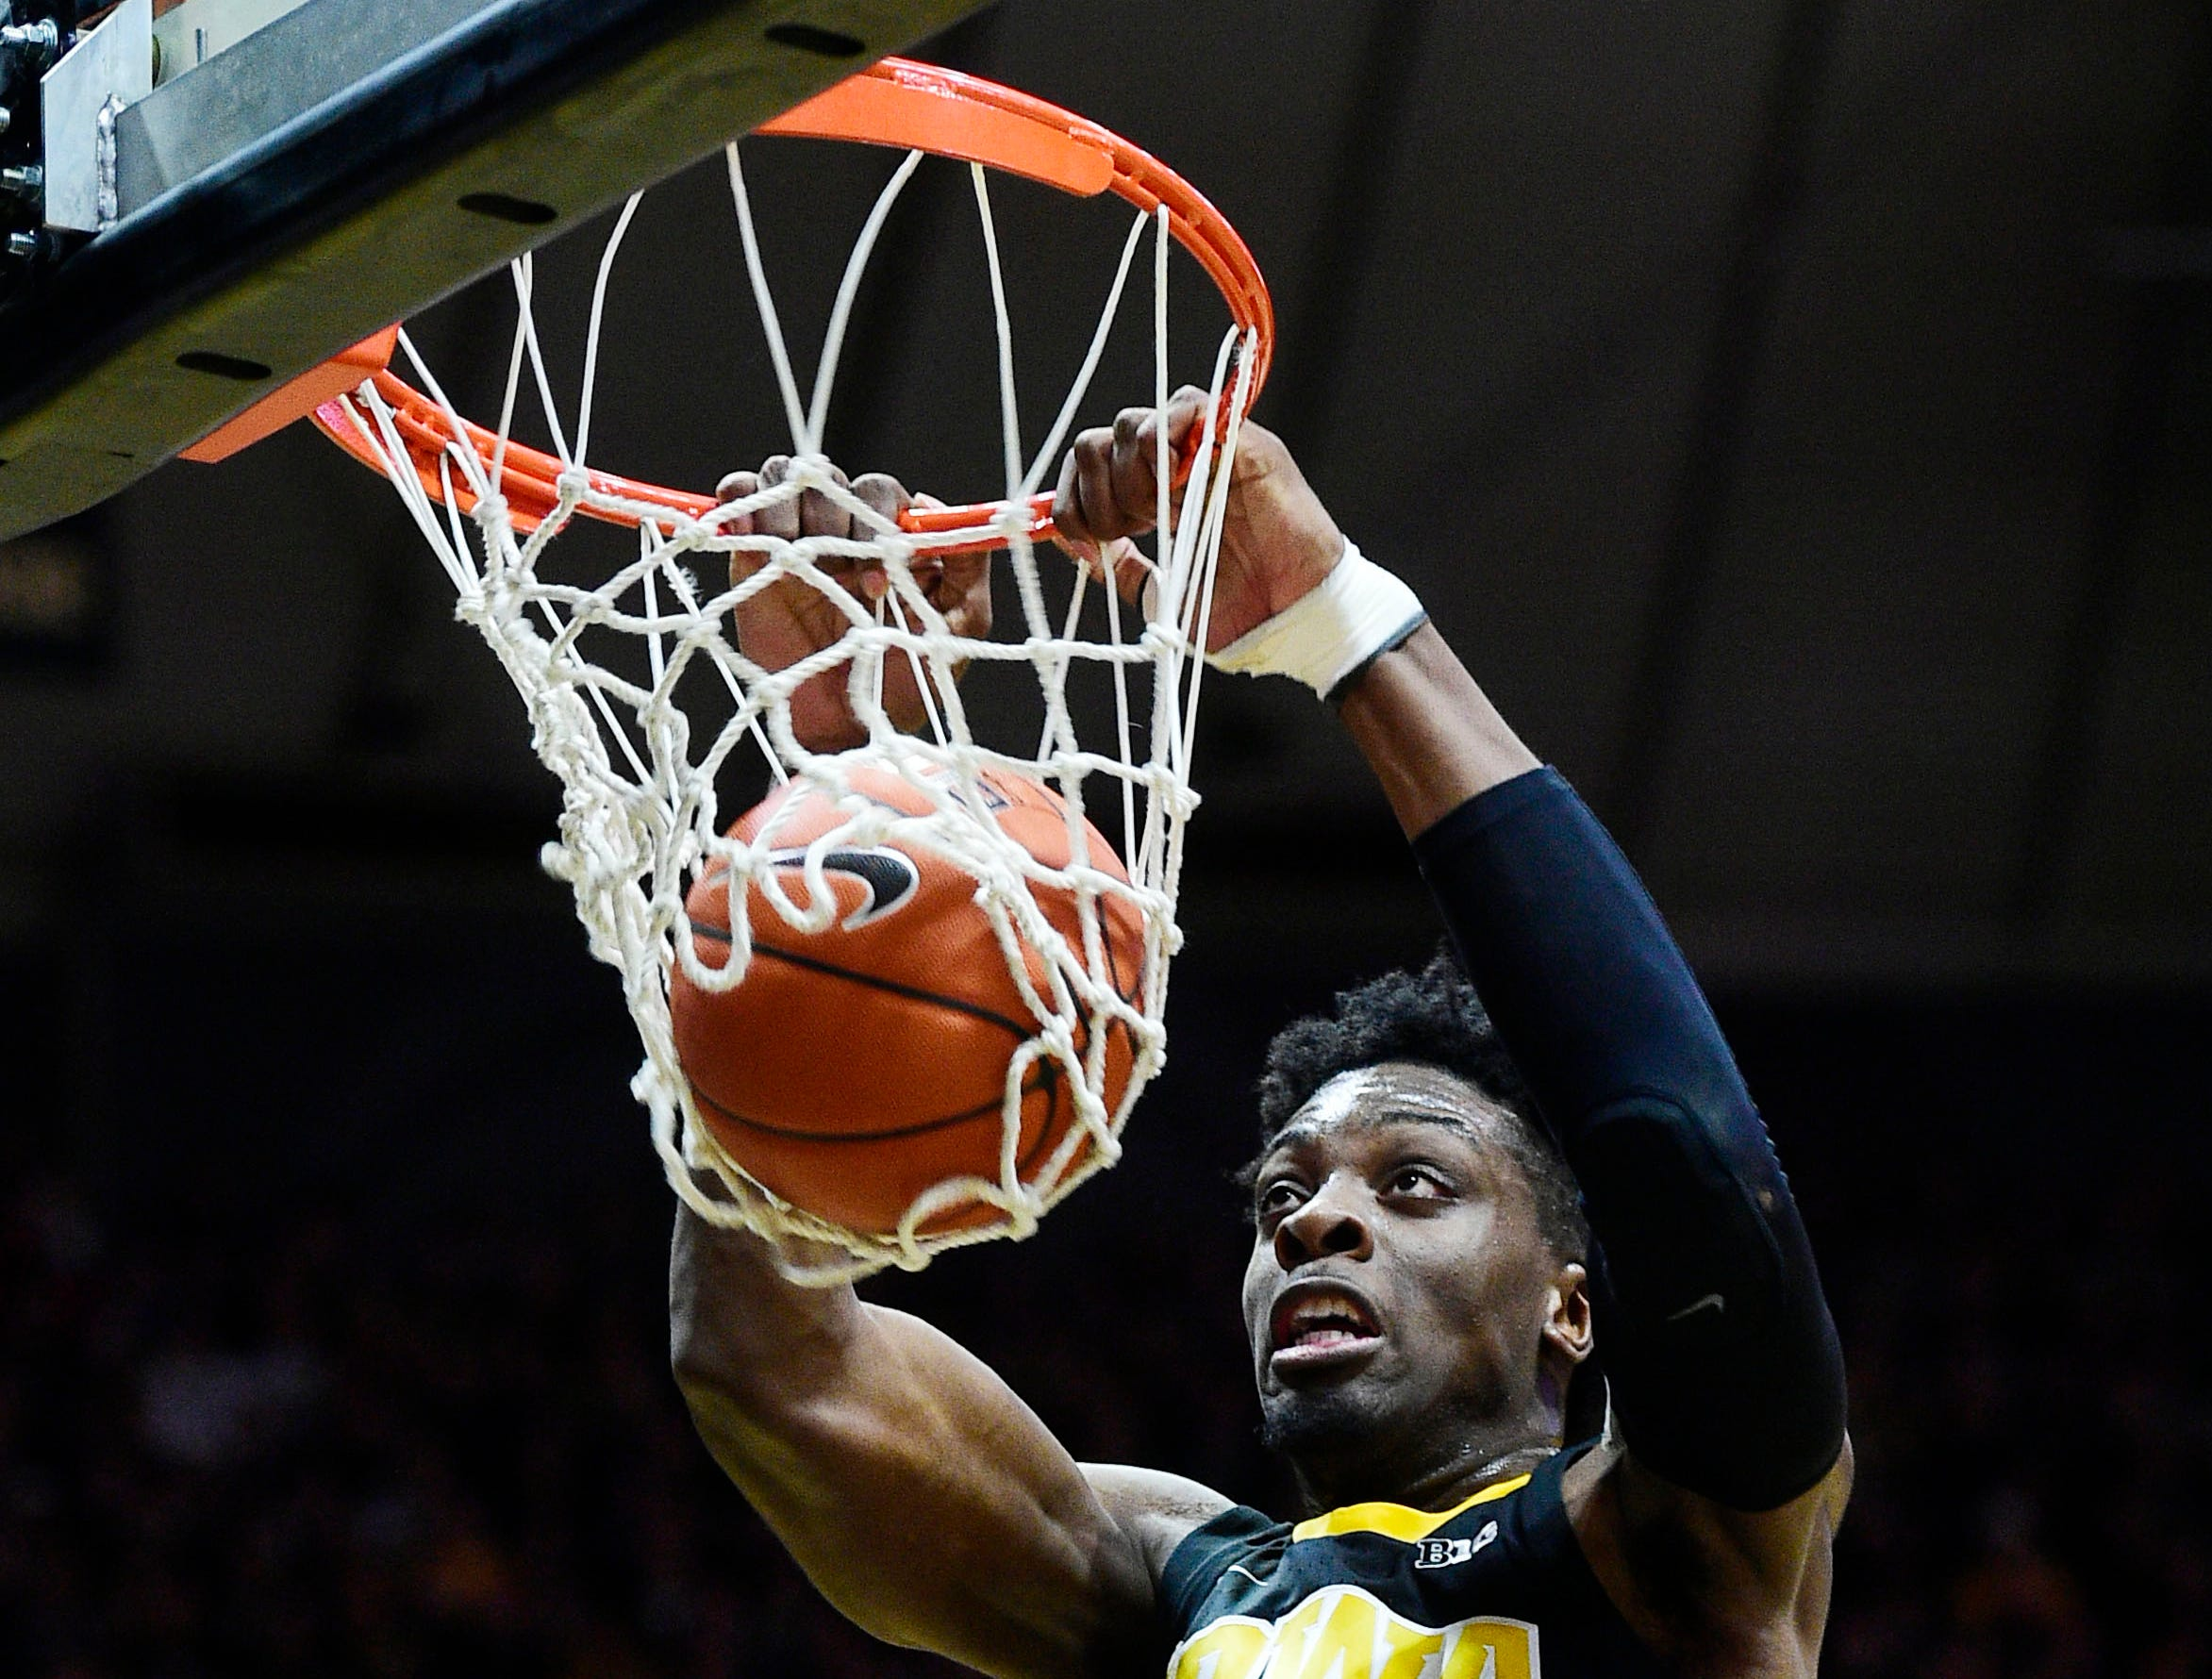 Jan 3, 2019; West Lafayette, IN, USA;  Iowa Hawkeyes forward Tyler Cook  (25) slam dunks in the first half against the Purdue Boilermakers at Mackey Arena. Mandatory Credit: Thomas J. Russo-USA TODAY Sports